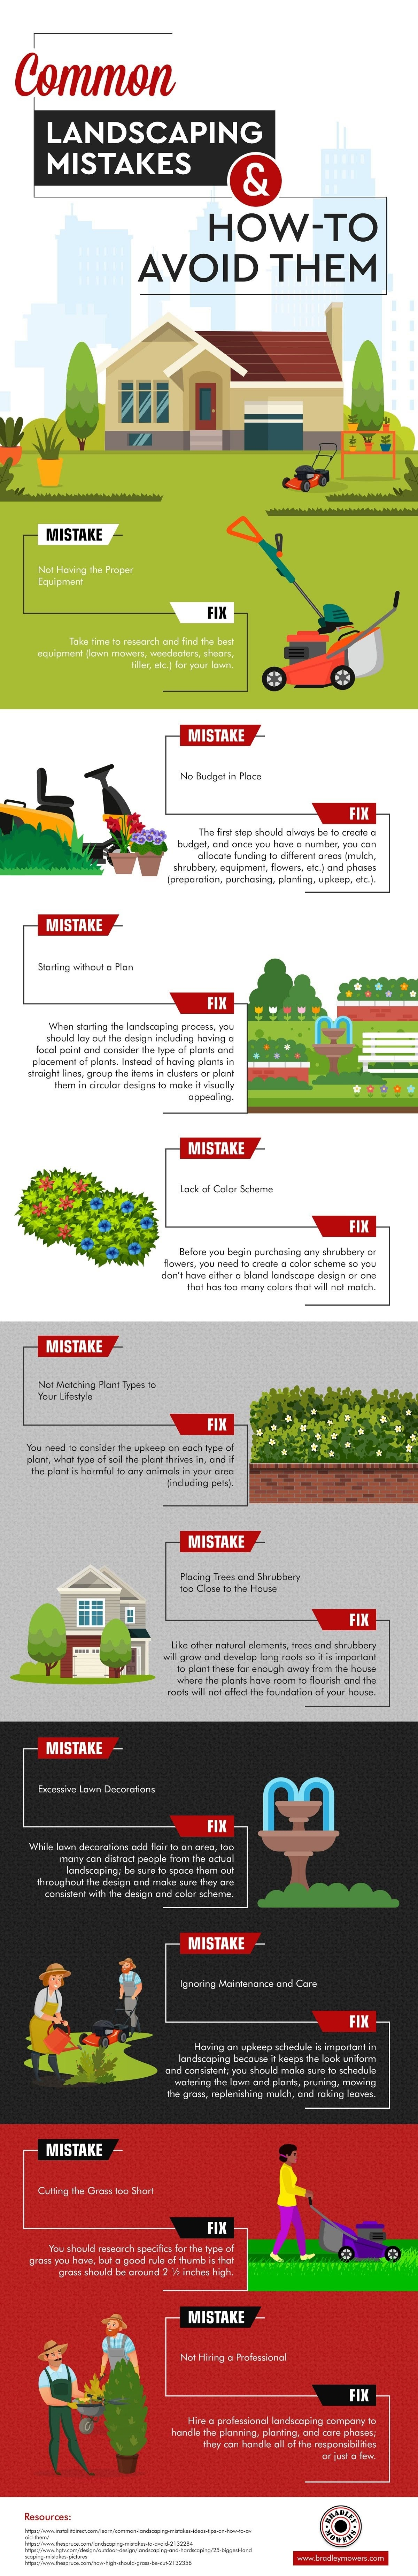 Common Landscaping Mistakes and How To Avoid Them #infographic